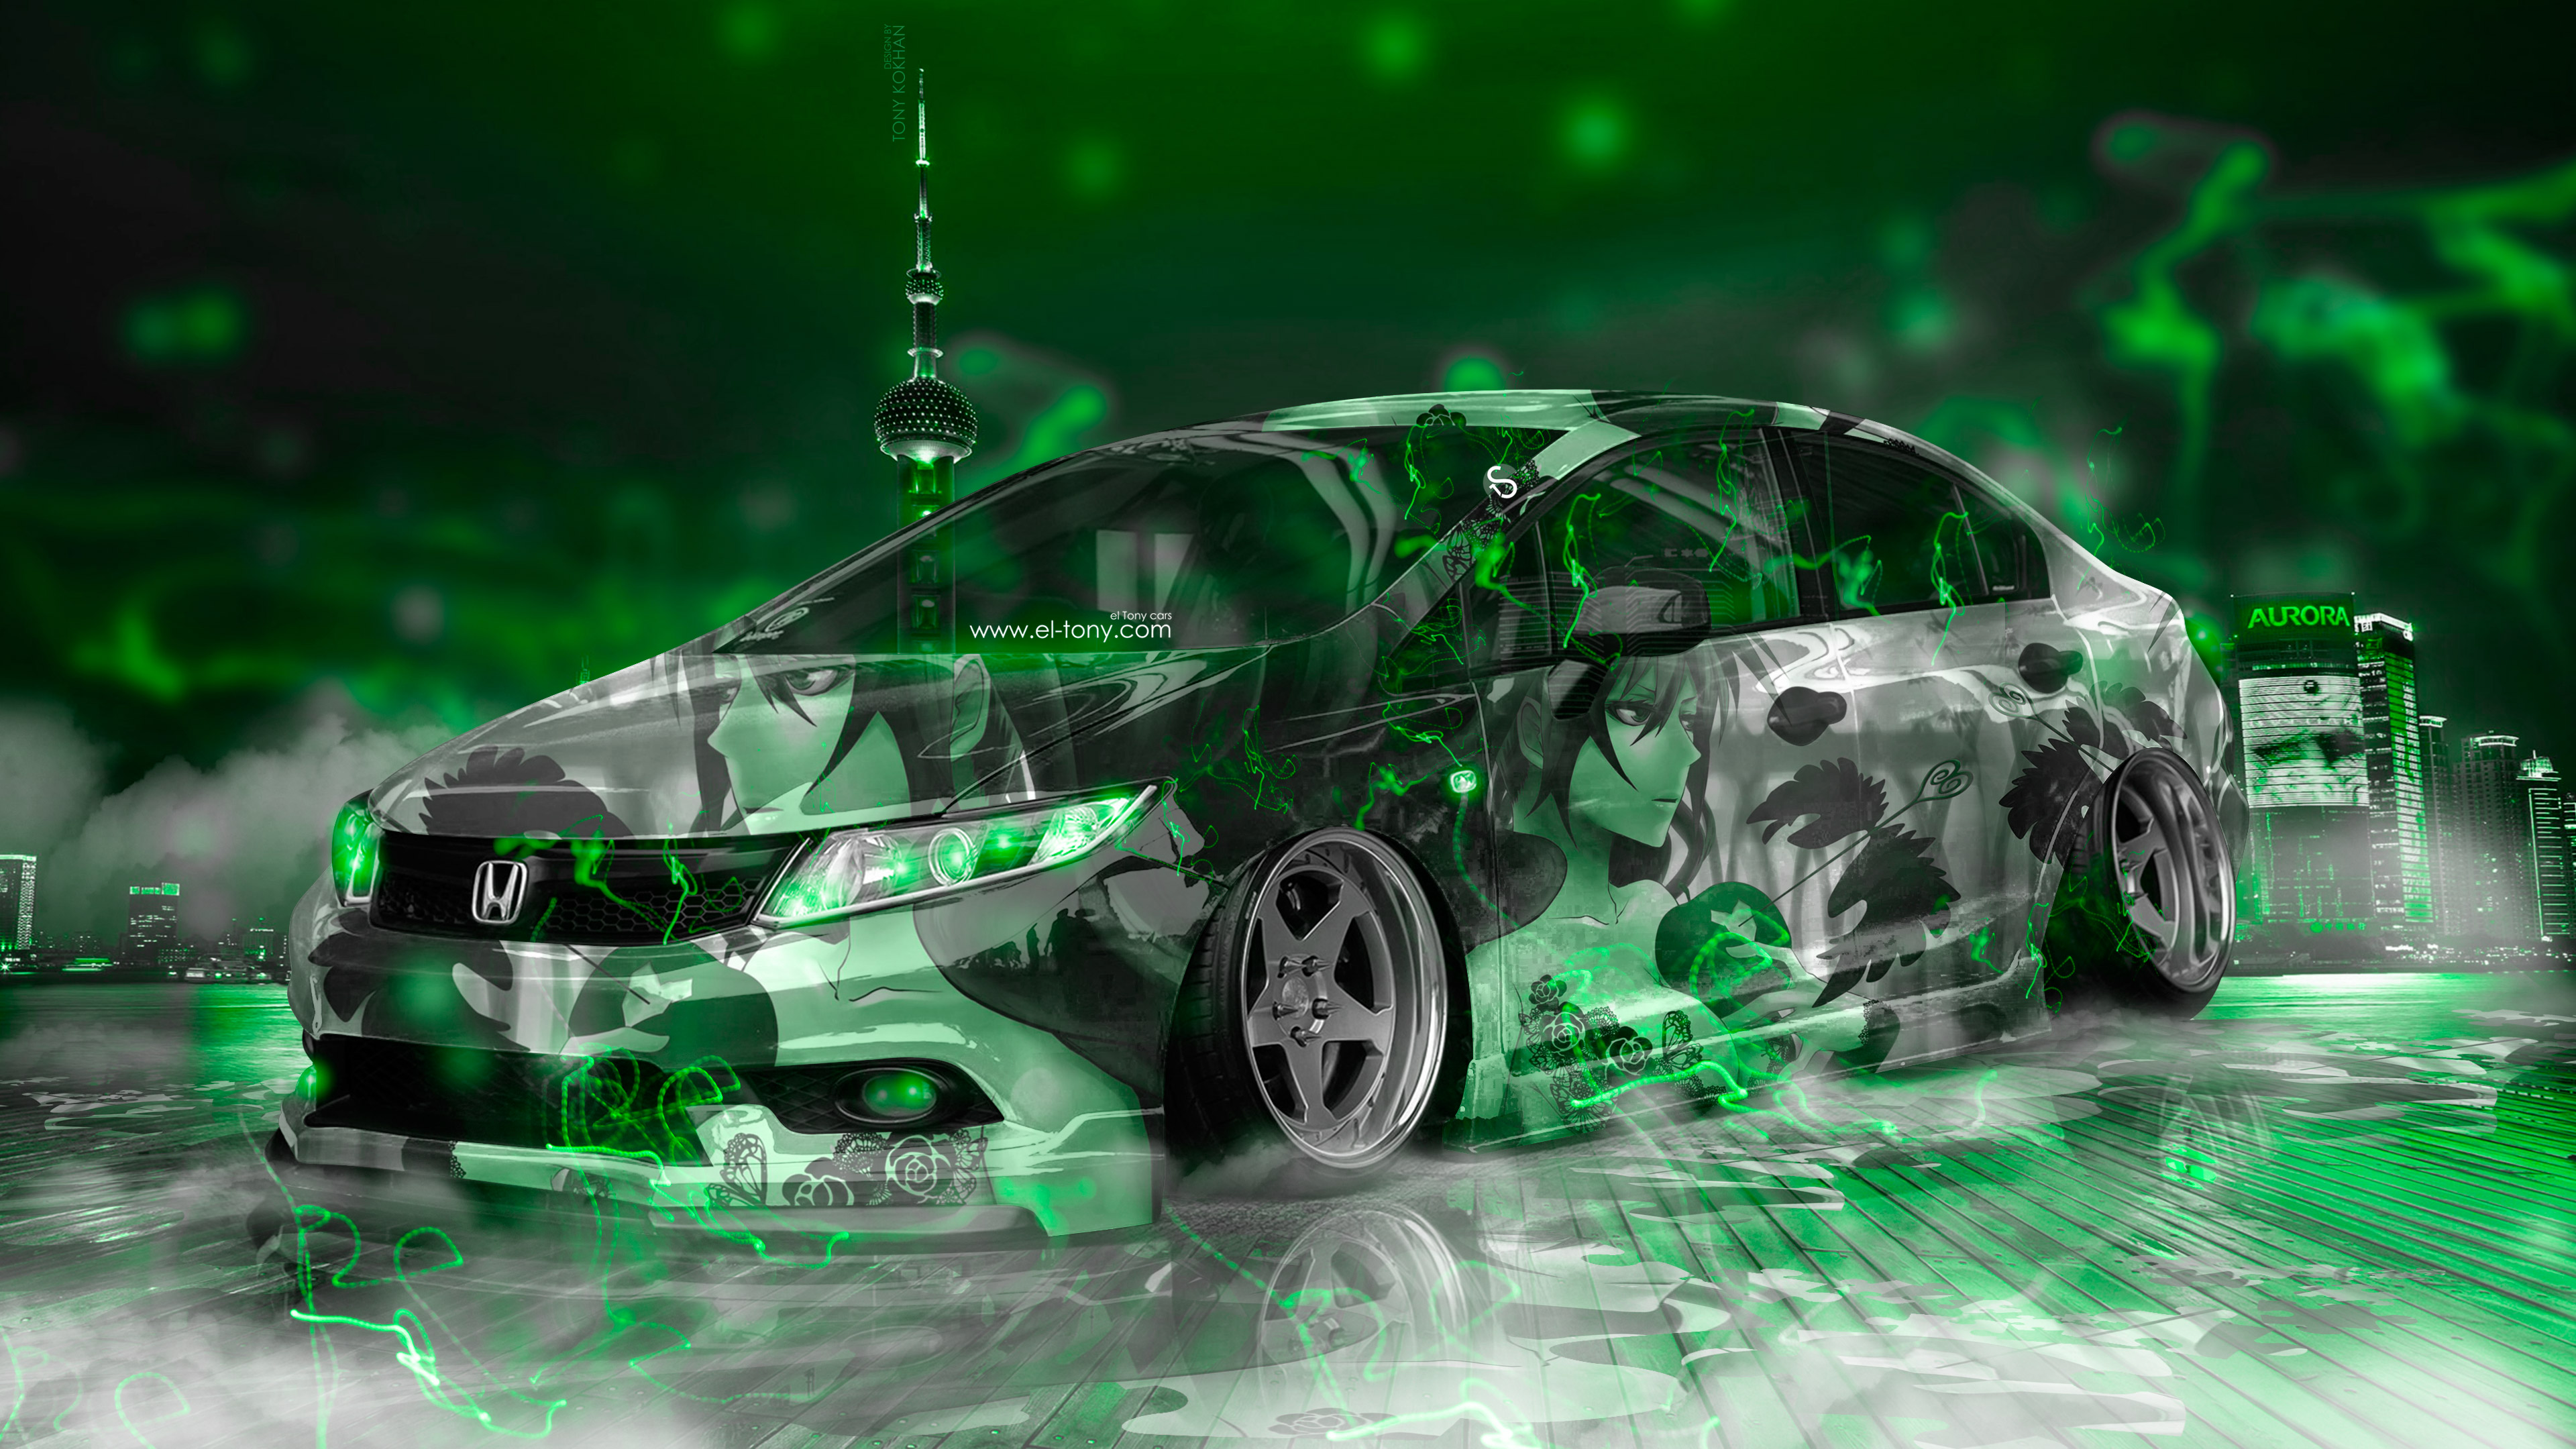 honda civic jdm tuning super anime girl energy night city fog smoke car  el tony